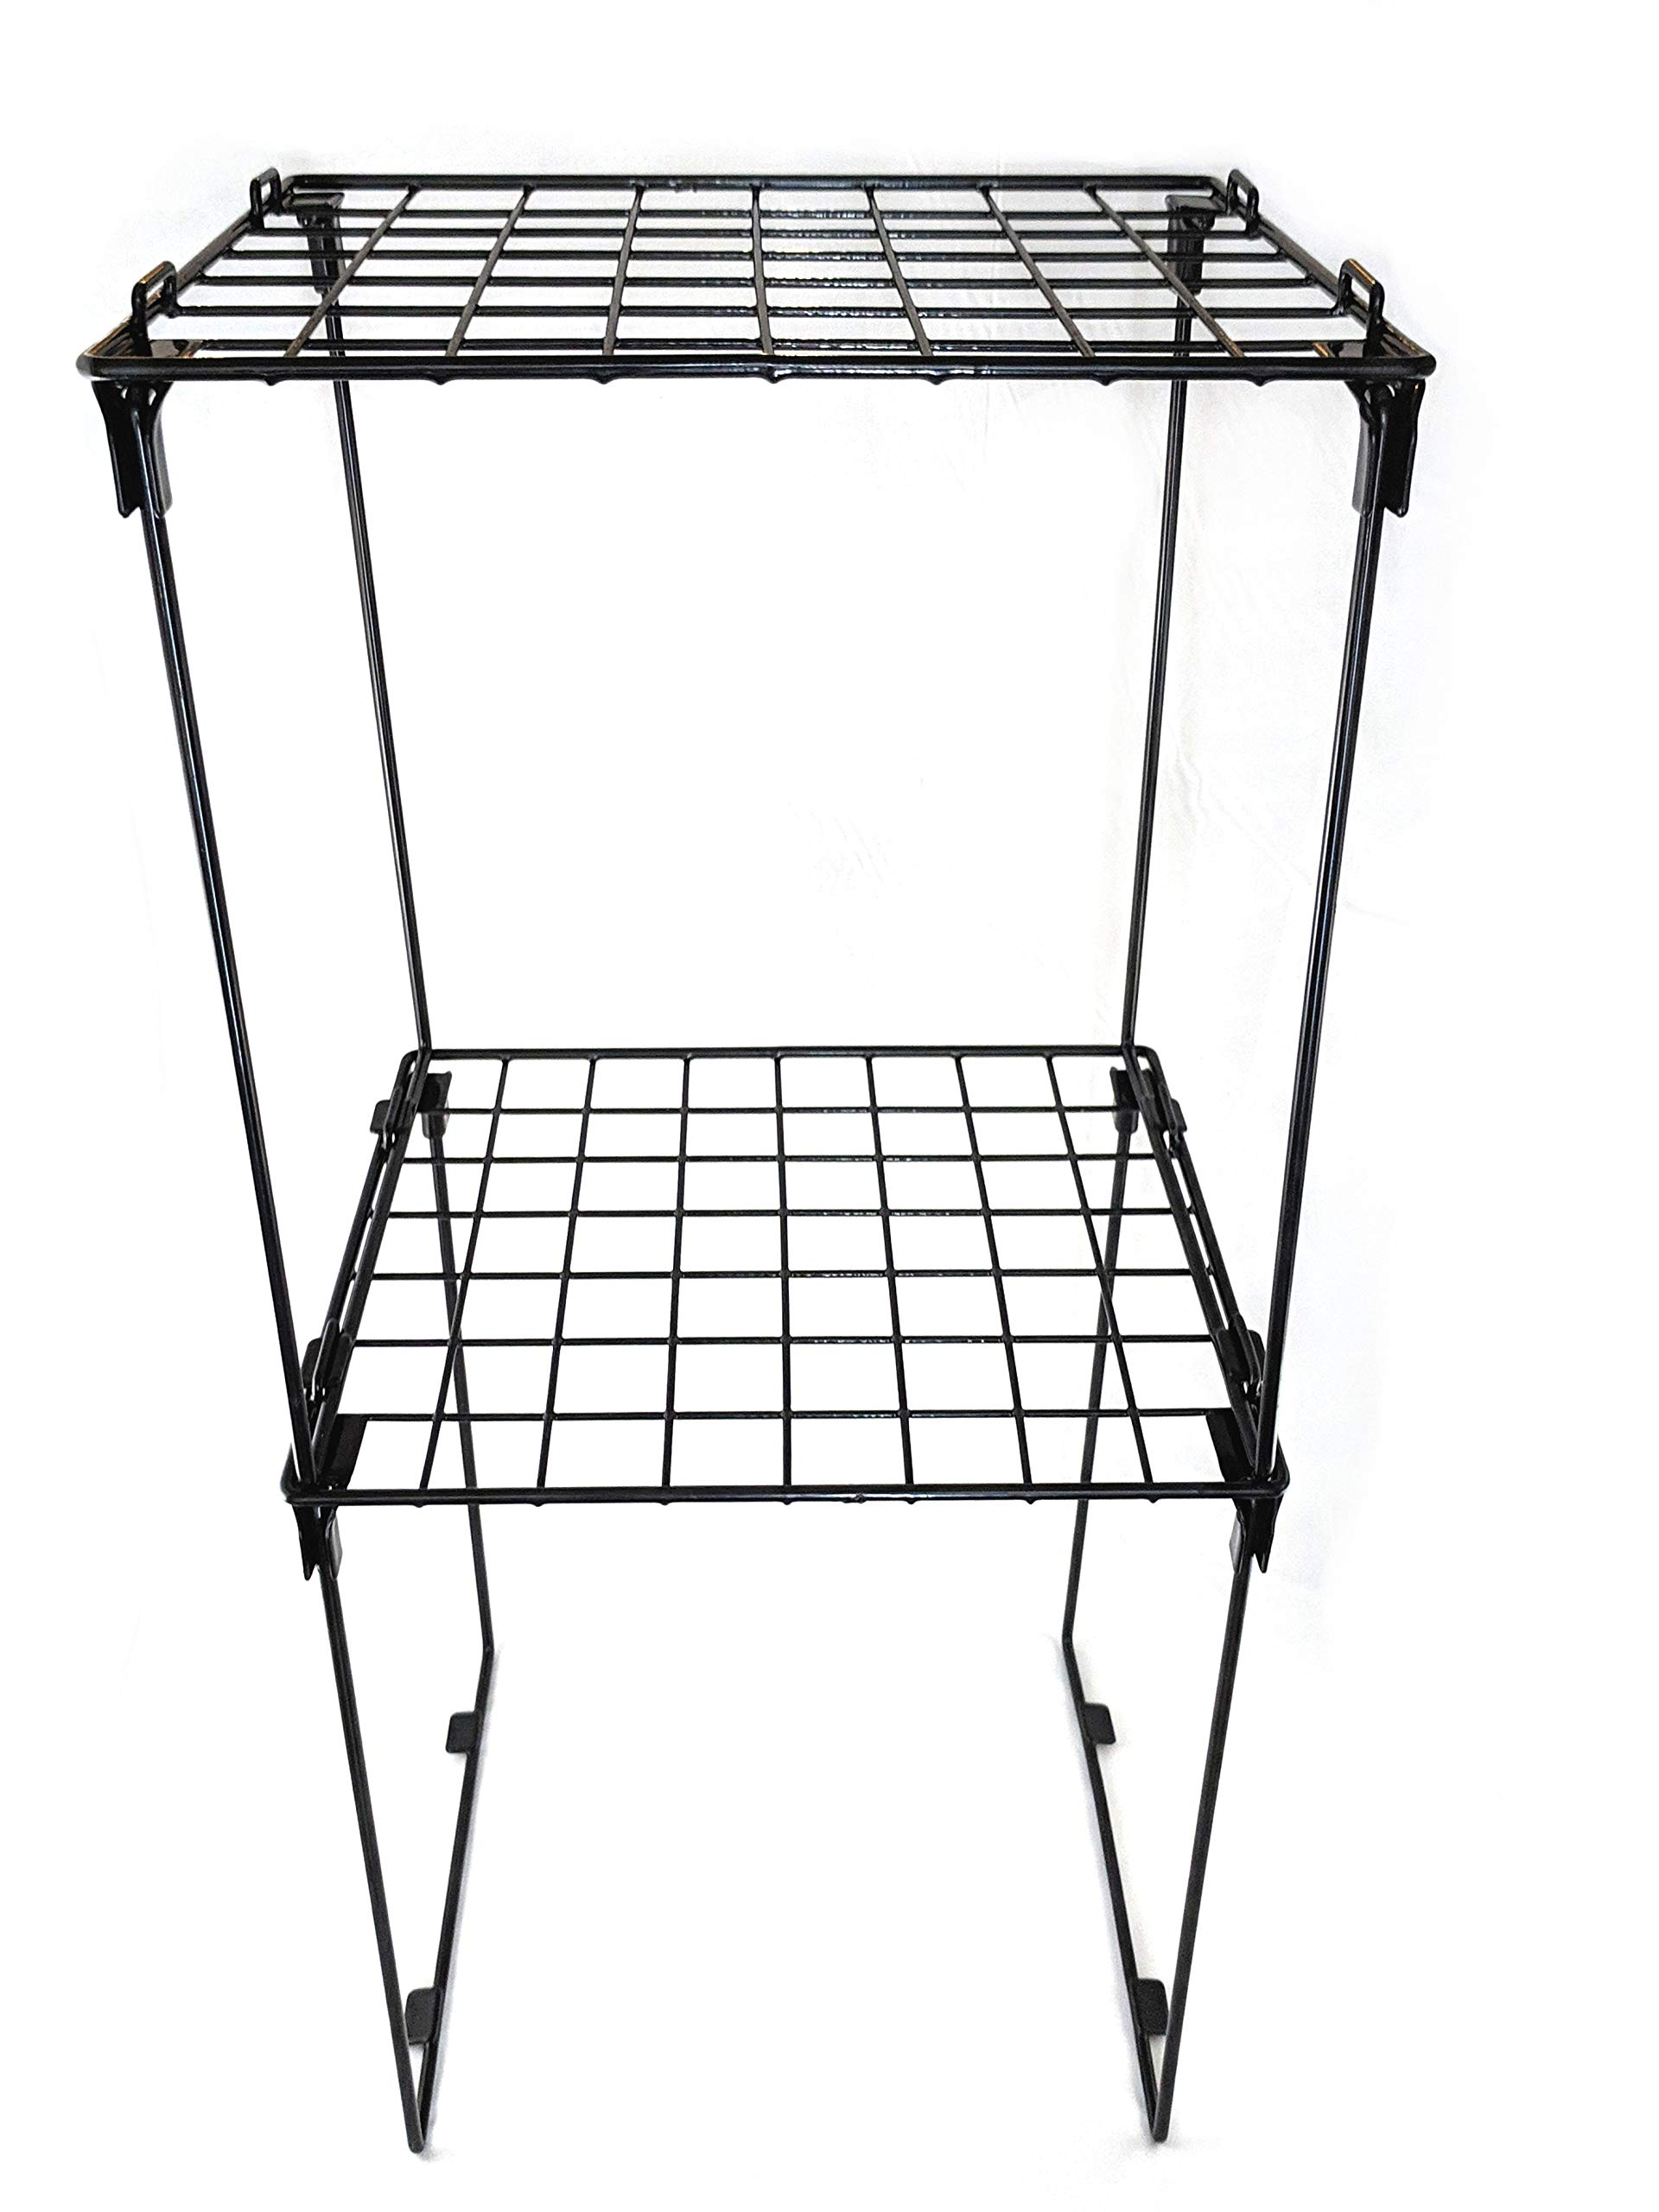 Set of 2 Stackable 12'' Height Locker Shelf for School, Office, Gym or Home Use (Black)